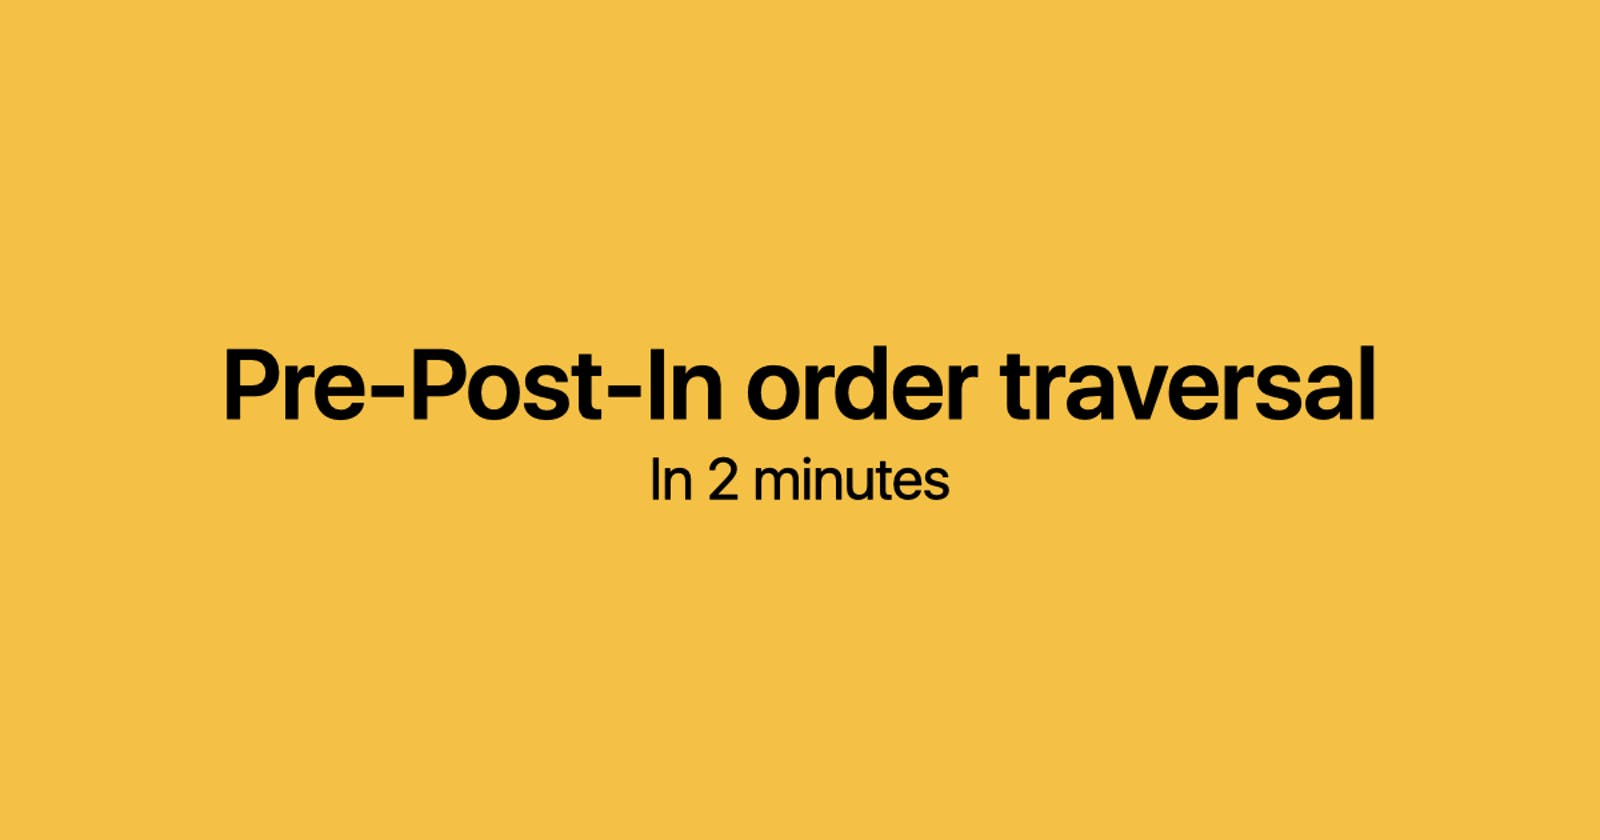 Pre order, In order and Post Order Traversal under 2 minutes